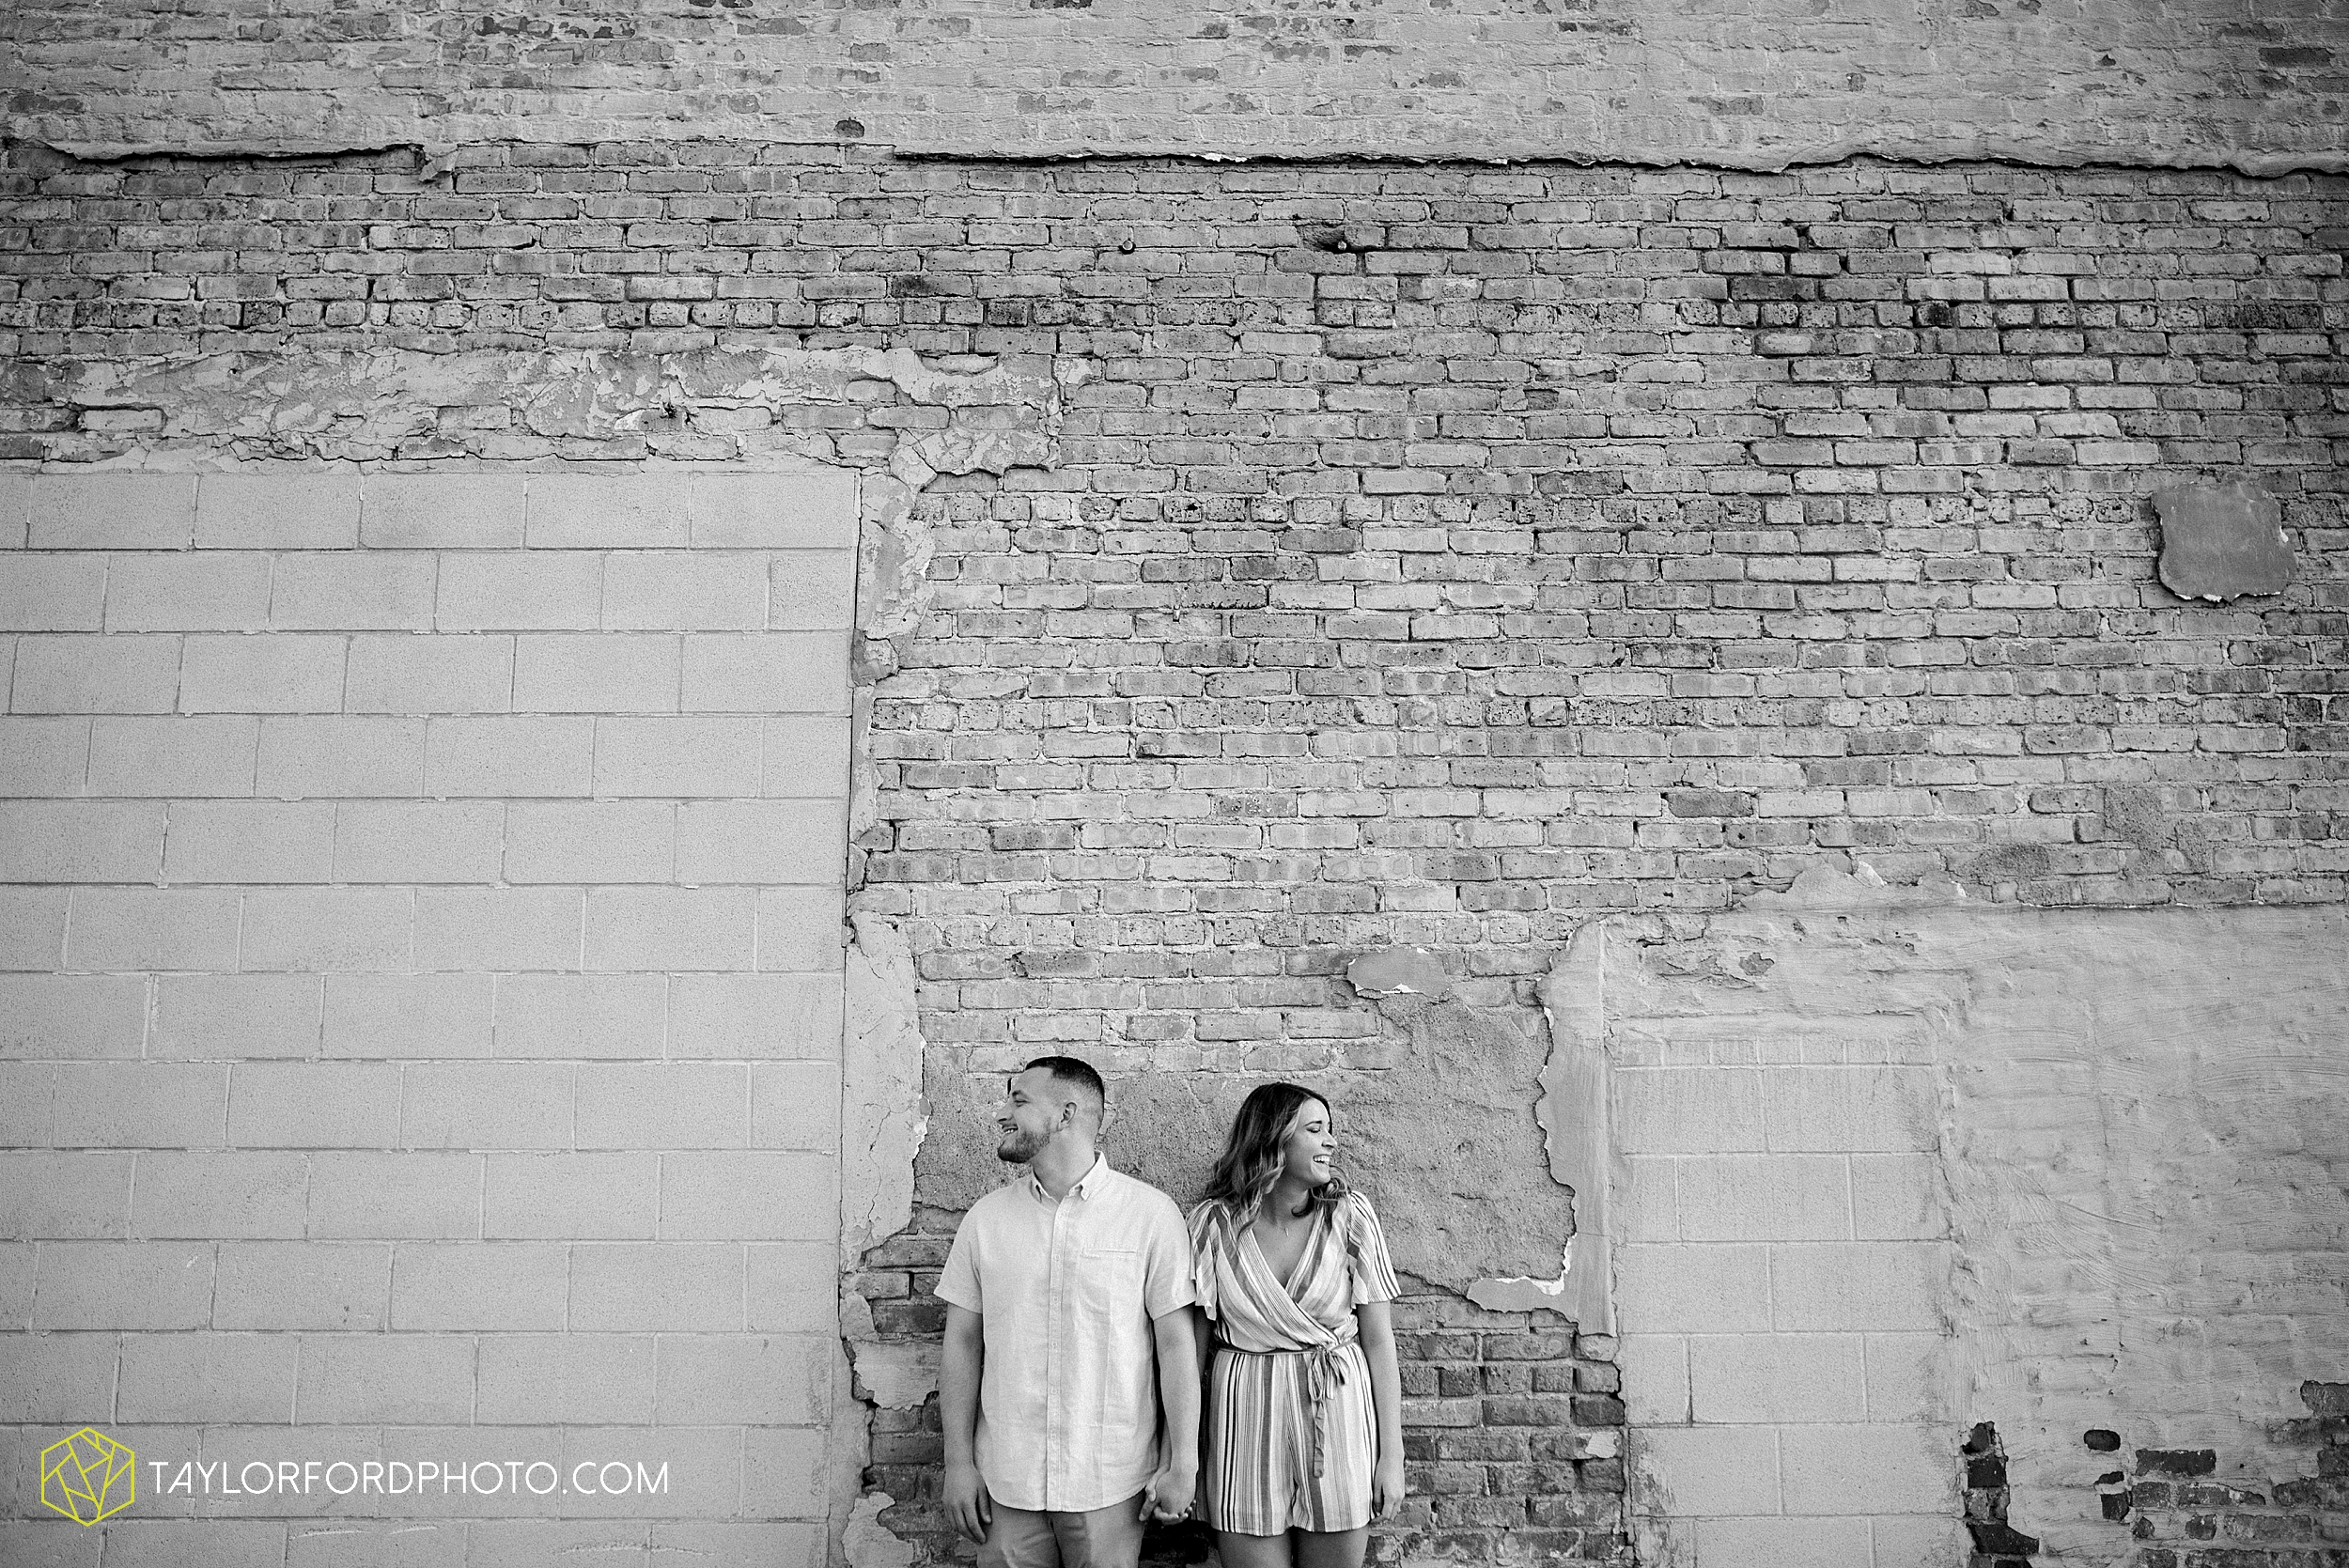 aly-taylor-downtown-fort-wayne-indiana-spring-engagement-photographer-photography-taylor-ford-hirschy-photographer_2576.jpg